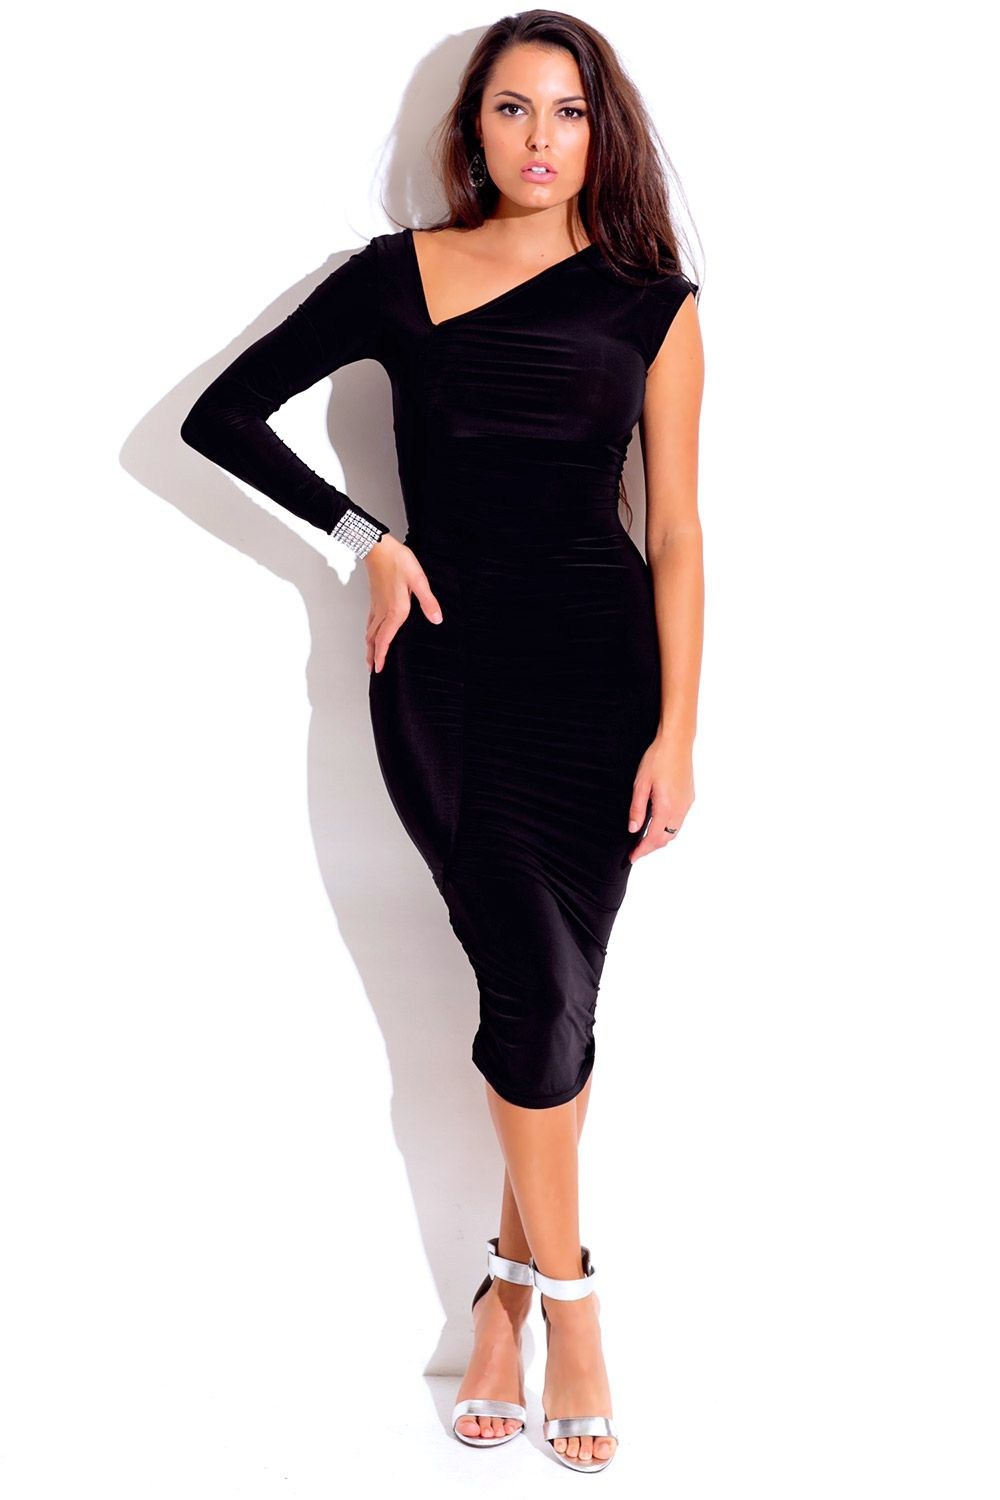 Plus Size Midnight Black Asymmetrical Ruched Bejeweled Long Sleeve Fitted Party Midi Dress Midi Dress Party Fitted Party Dress One Shoulder Midi Dress [ 1500 x 1000 Pixel ]